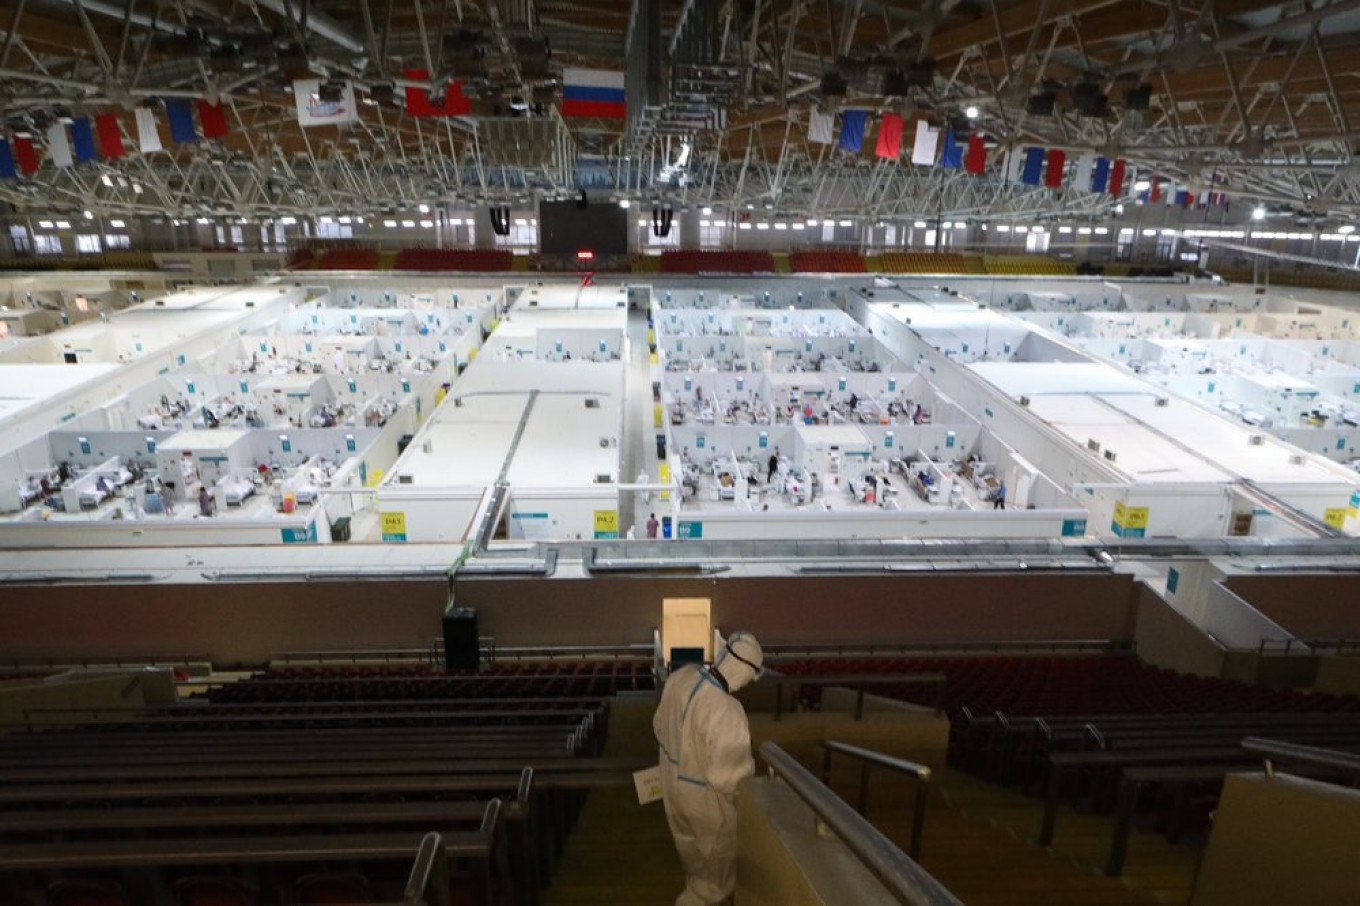 Russia Tops 3 Million Covid-19 Infections – The Moscow Times